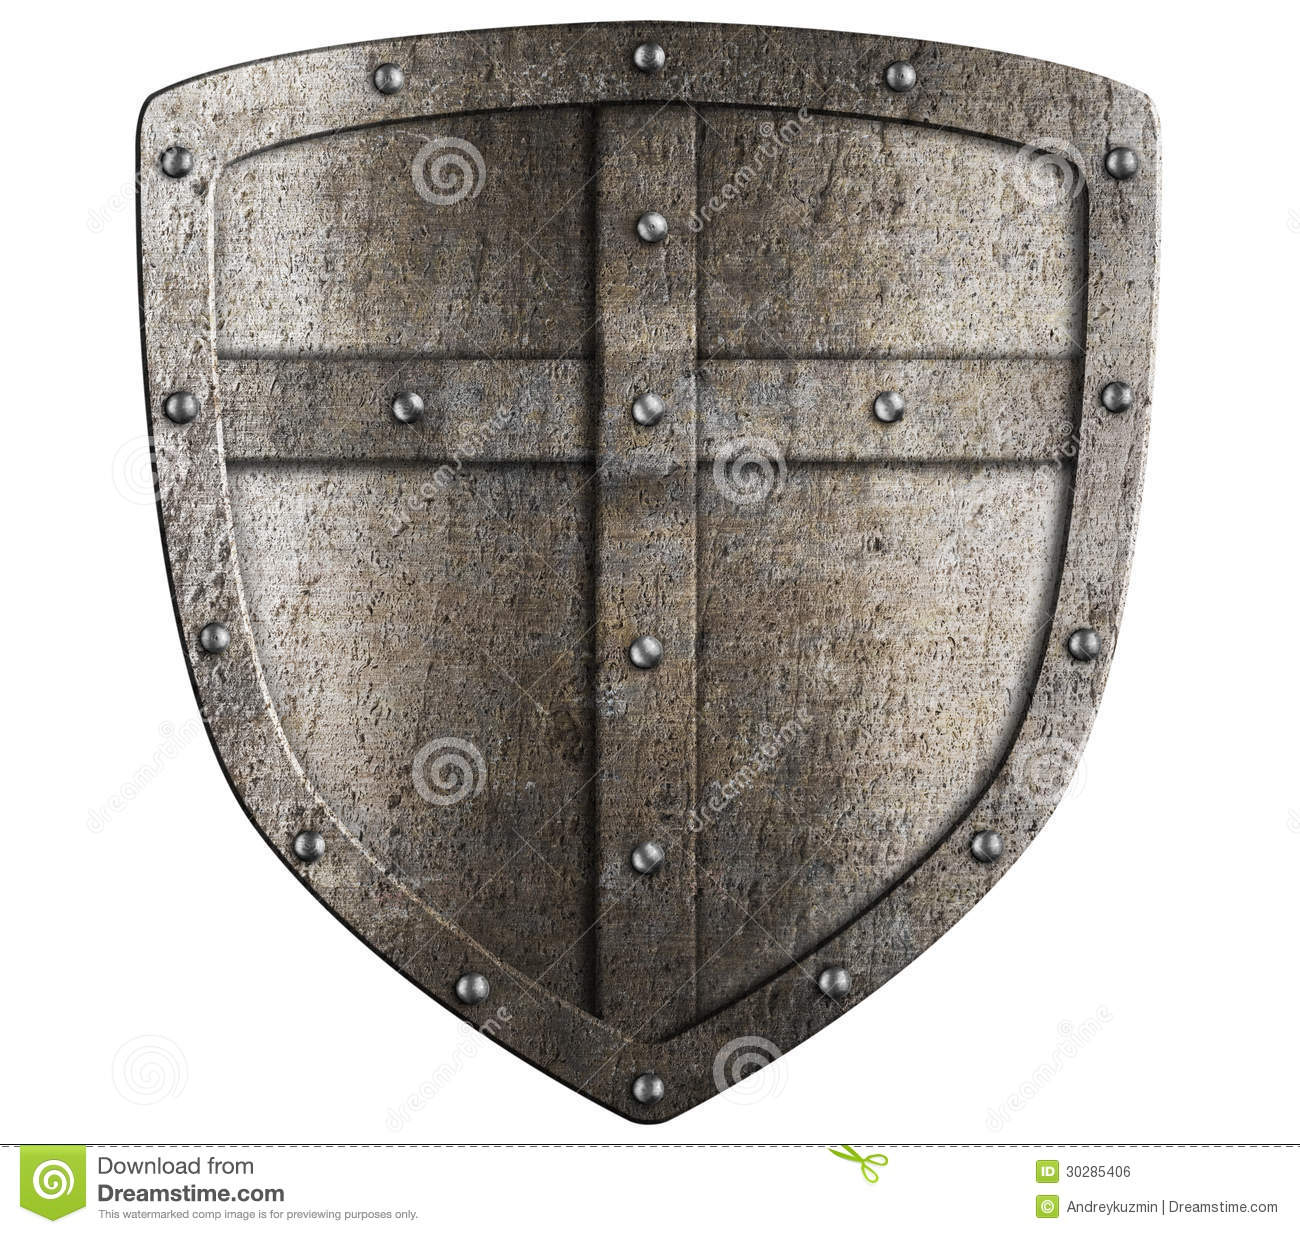 how to make a metal shield